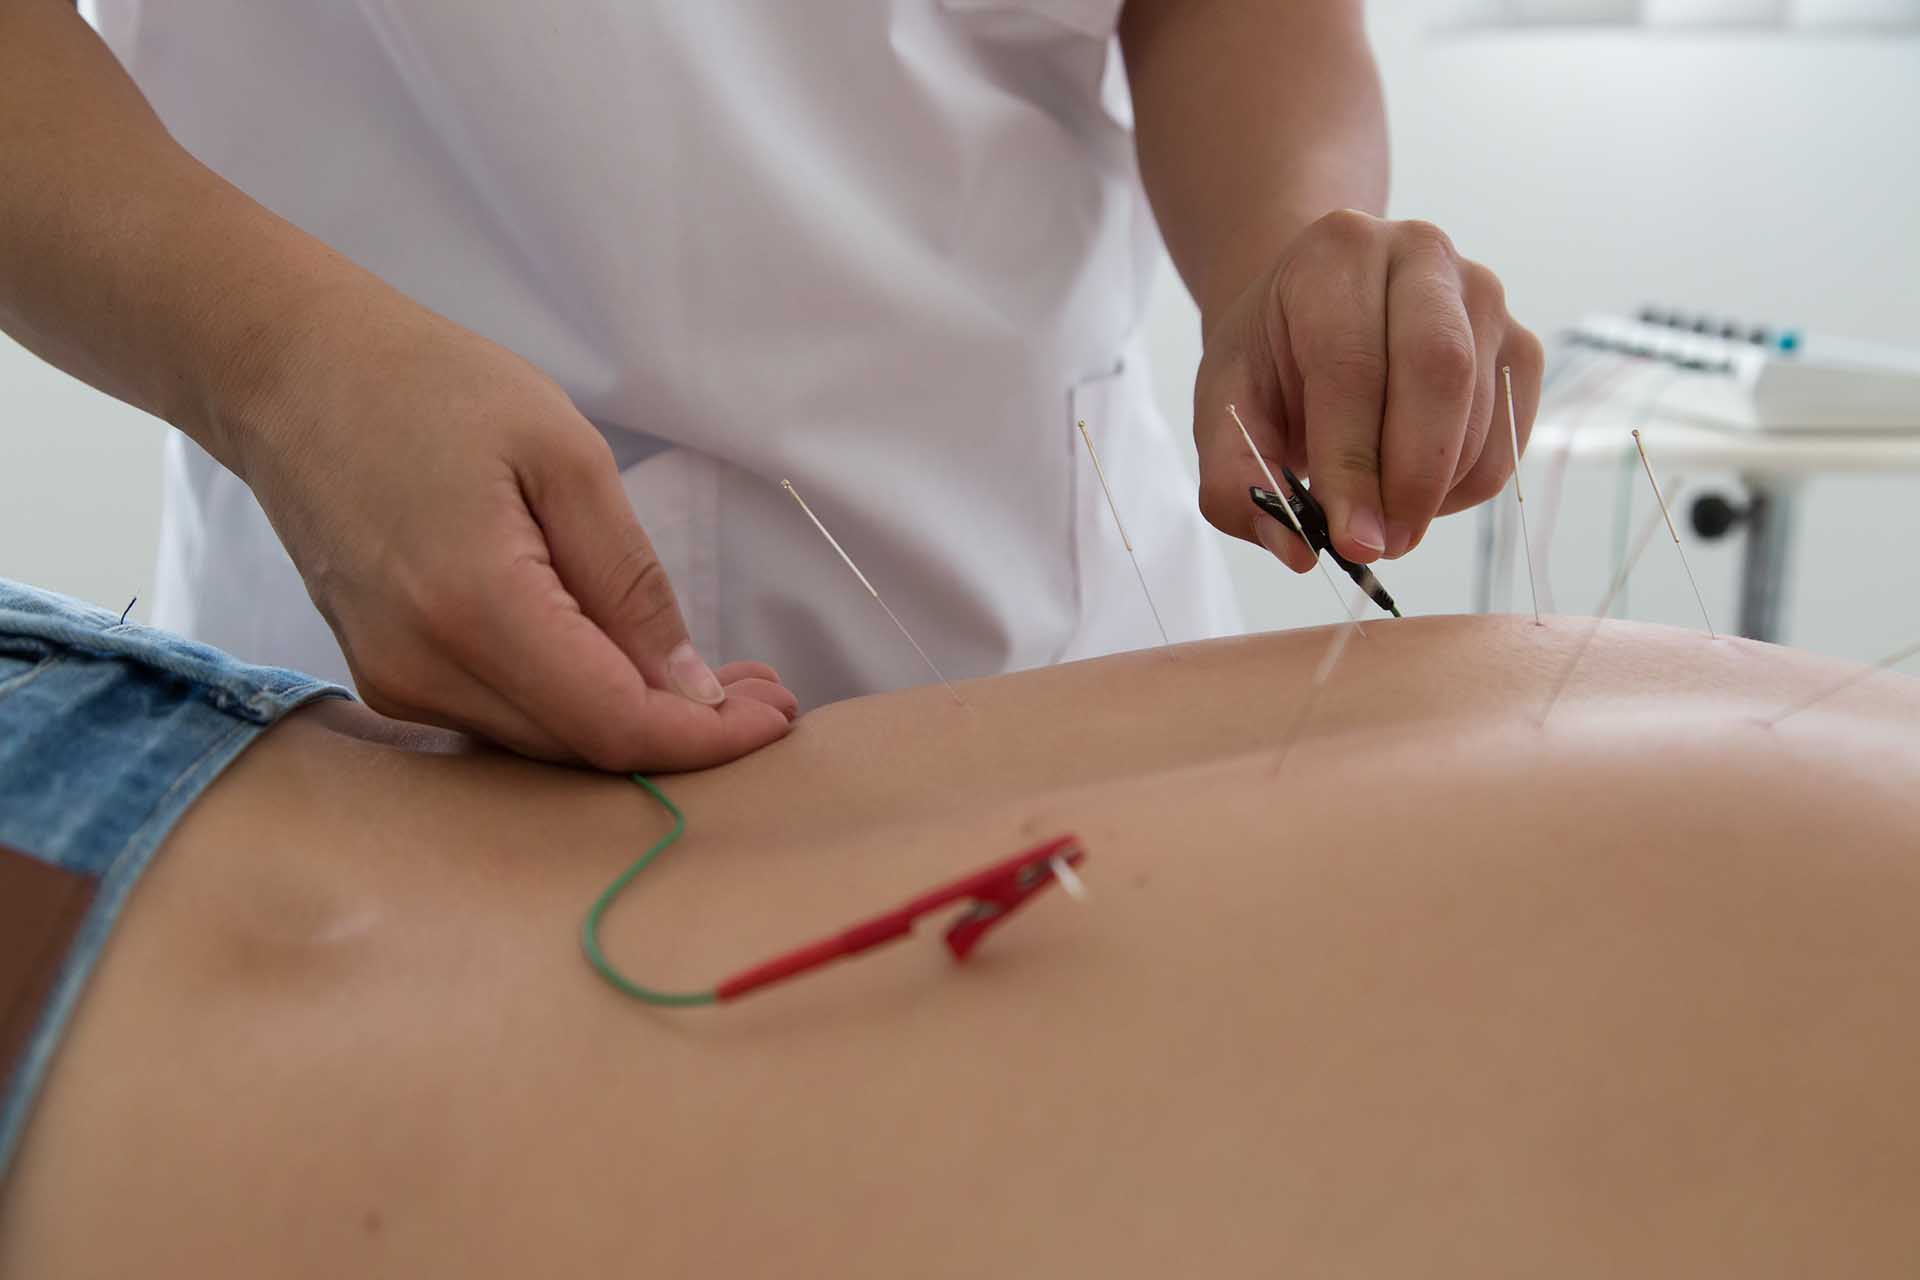 Toumazi Physio Gallery - Electro acupuncture